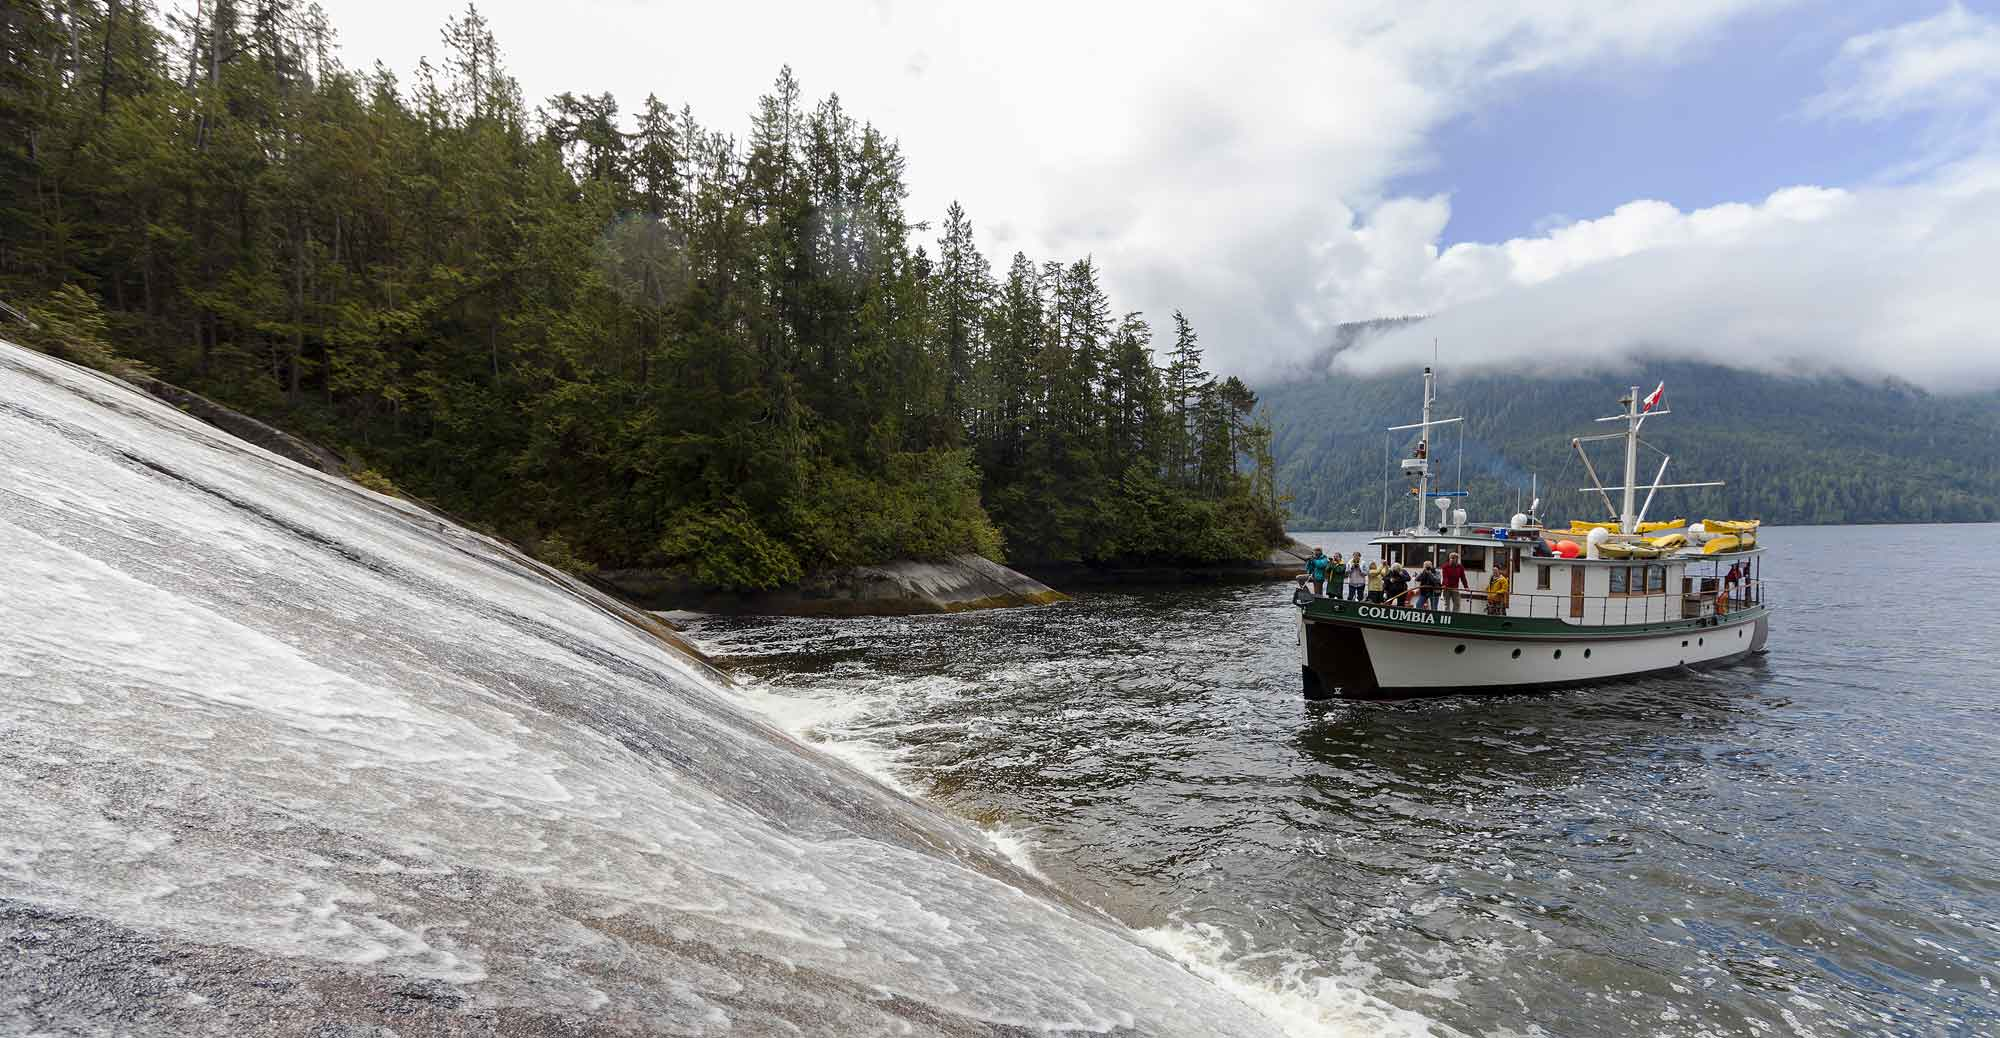 The Columbia III noses into a low angle waterfall in Tribune Channel for guests to take pictures while on a photo-tour in the Broughton Archipelago. Broughton Archipelago, Central British Columbia Coast, British Columbia, Canada.